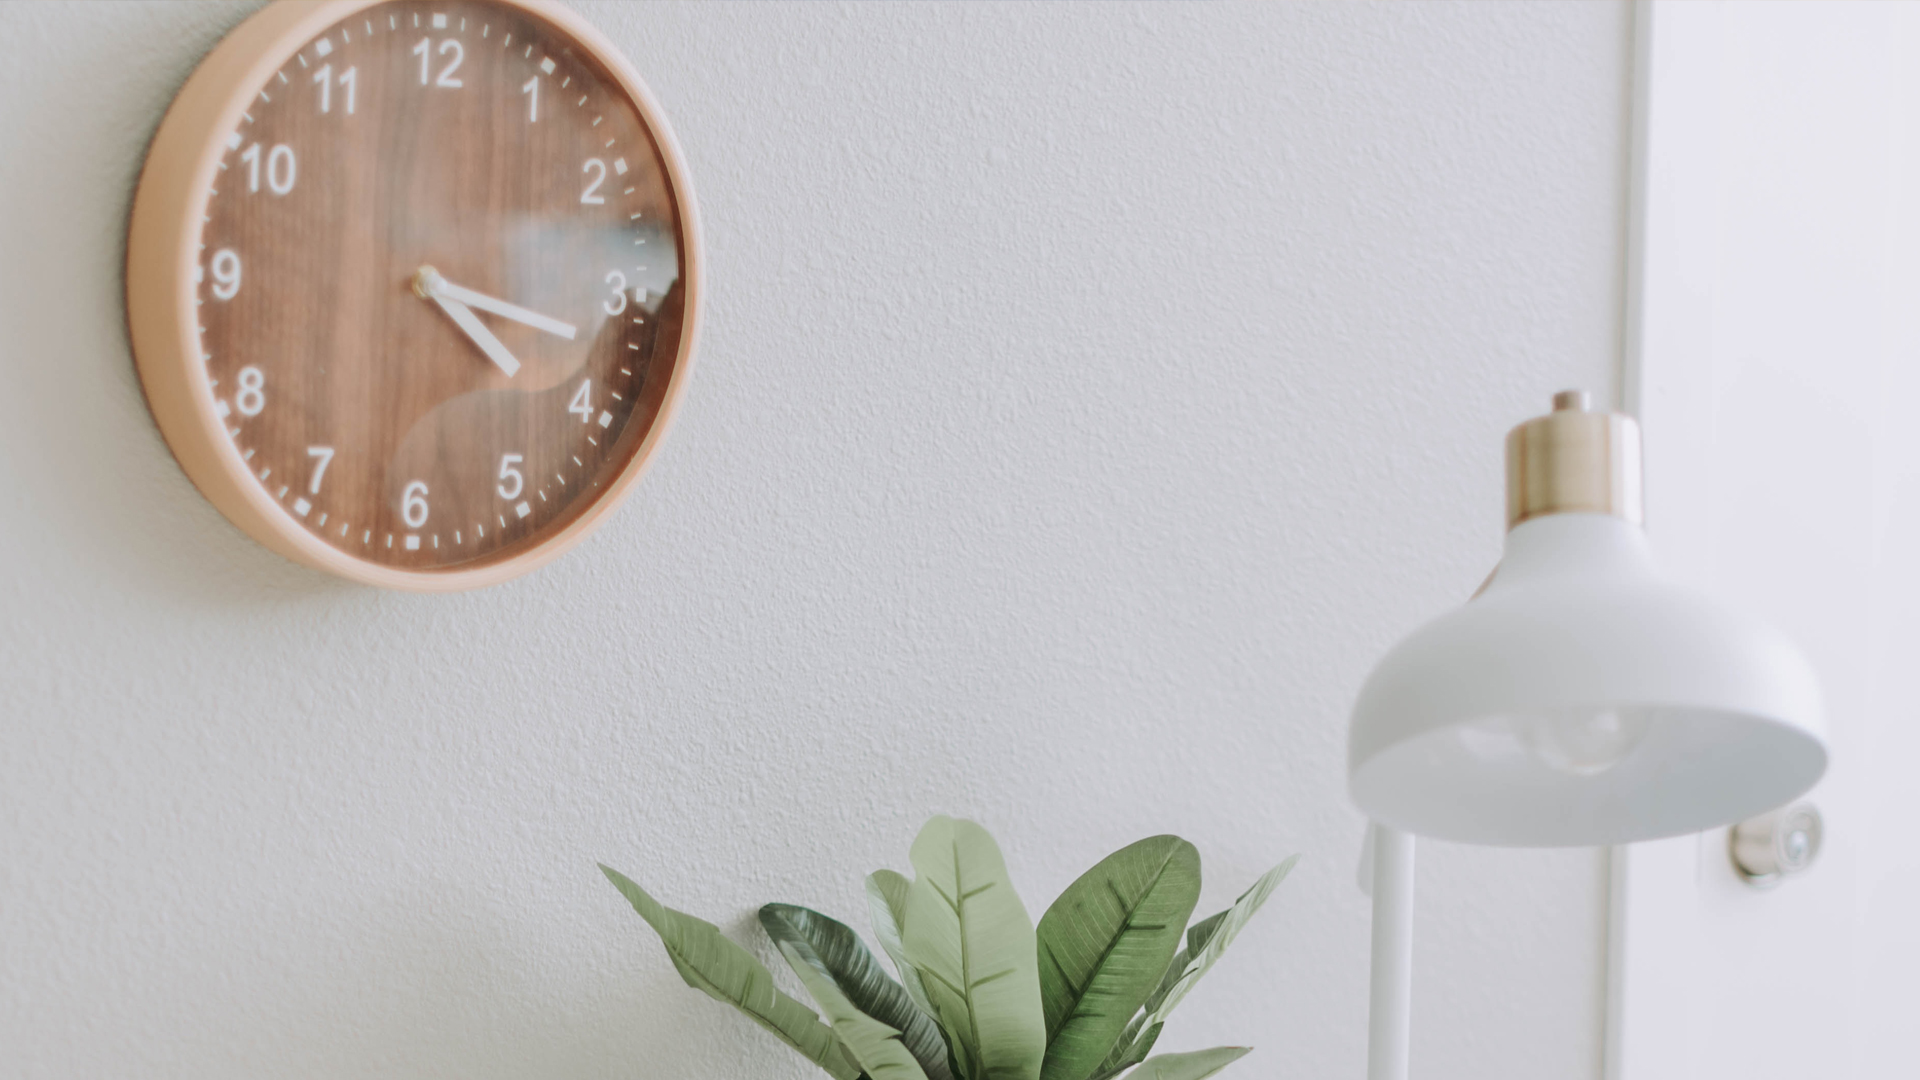 Teaching your child to tell the time? Here are our 9 practical tips and tricks to help you get started